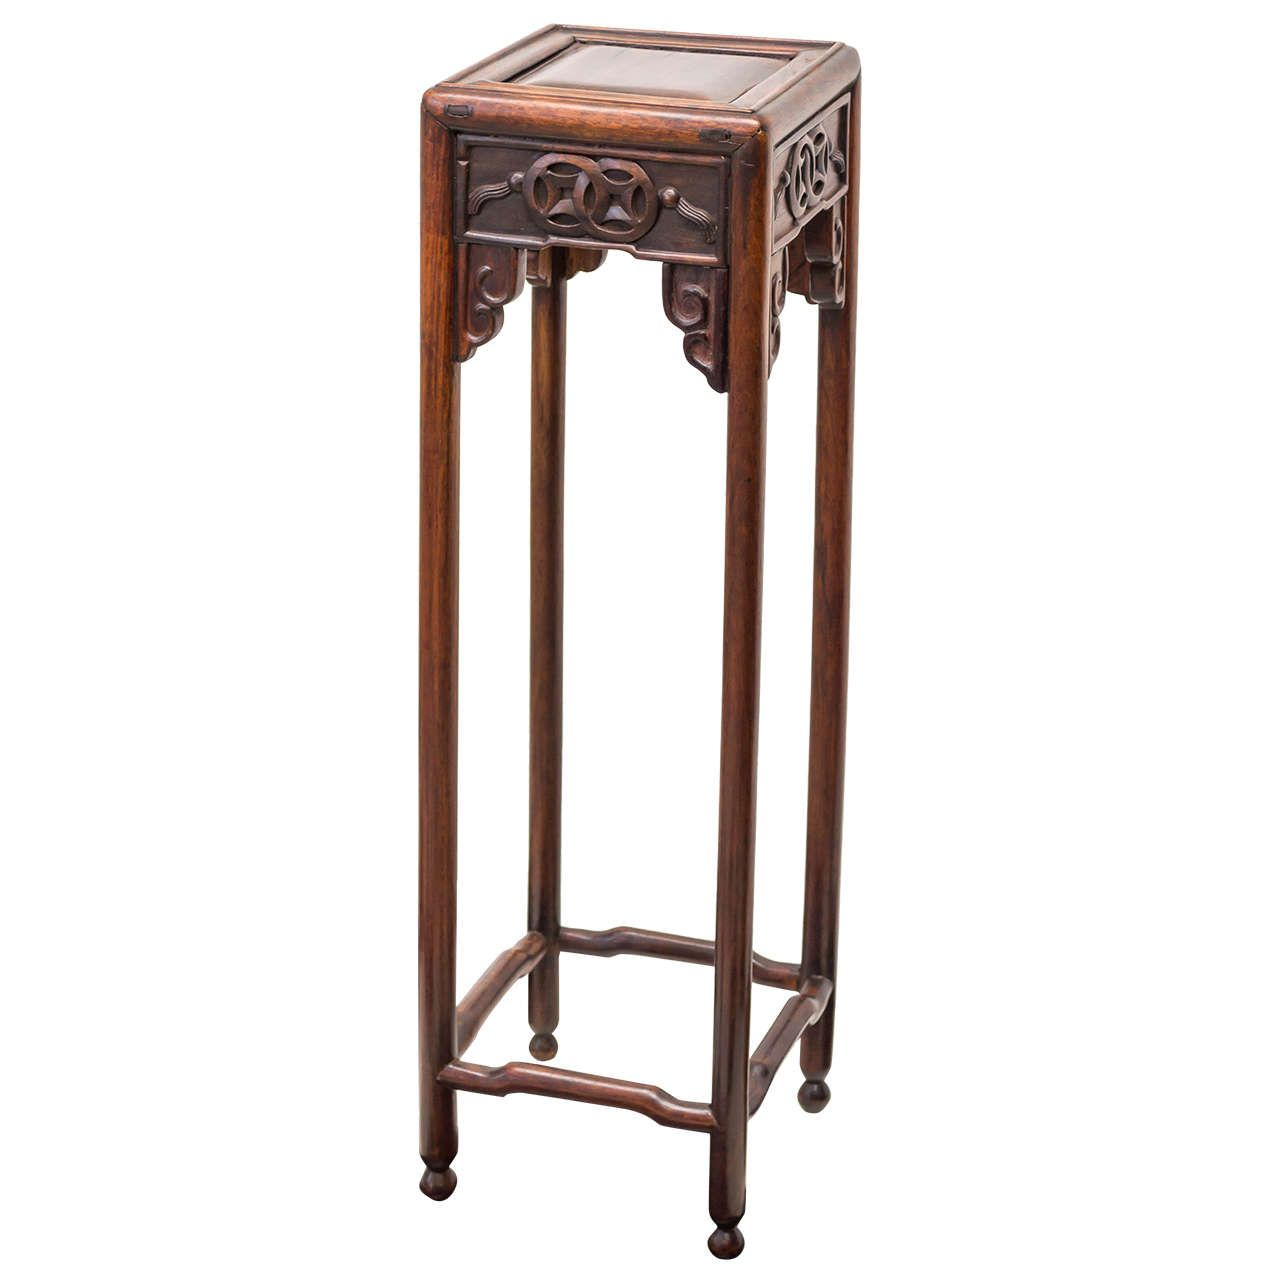 Chinese hong mu vase stand or side table tables modern and chinese hong mu vase stand or side table reviewsmspy